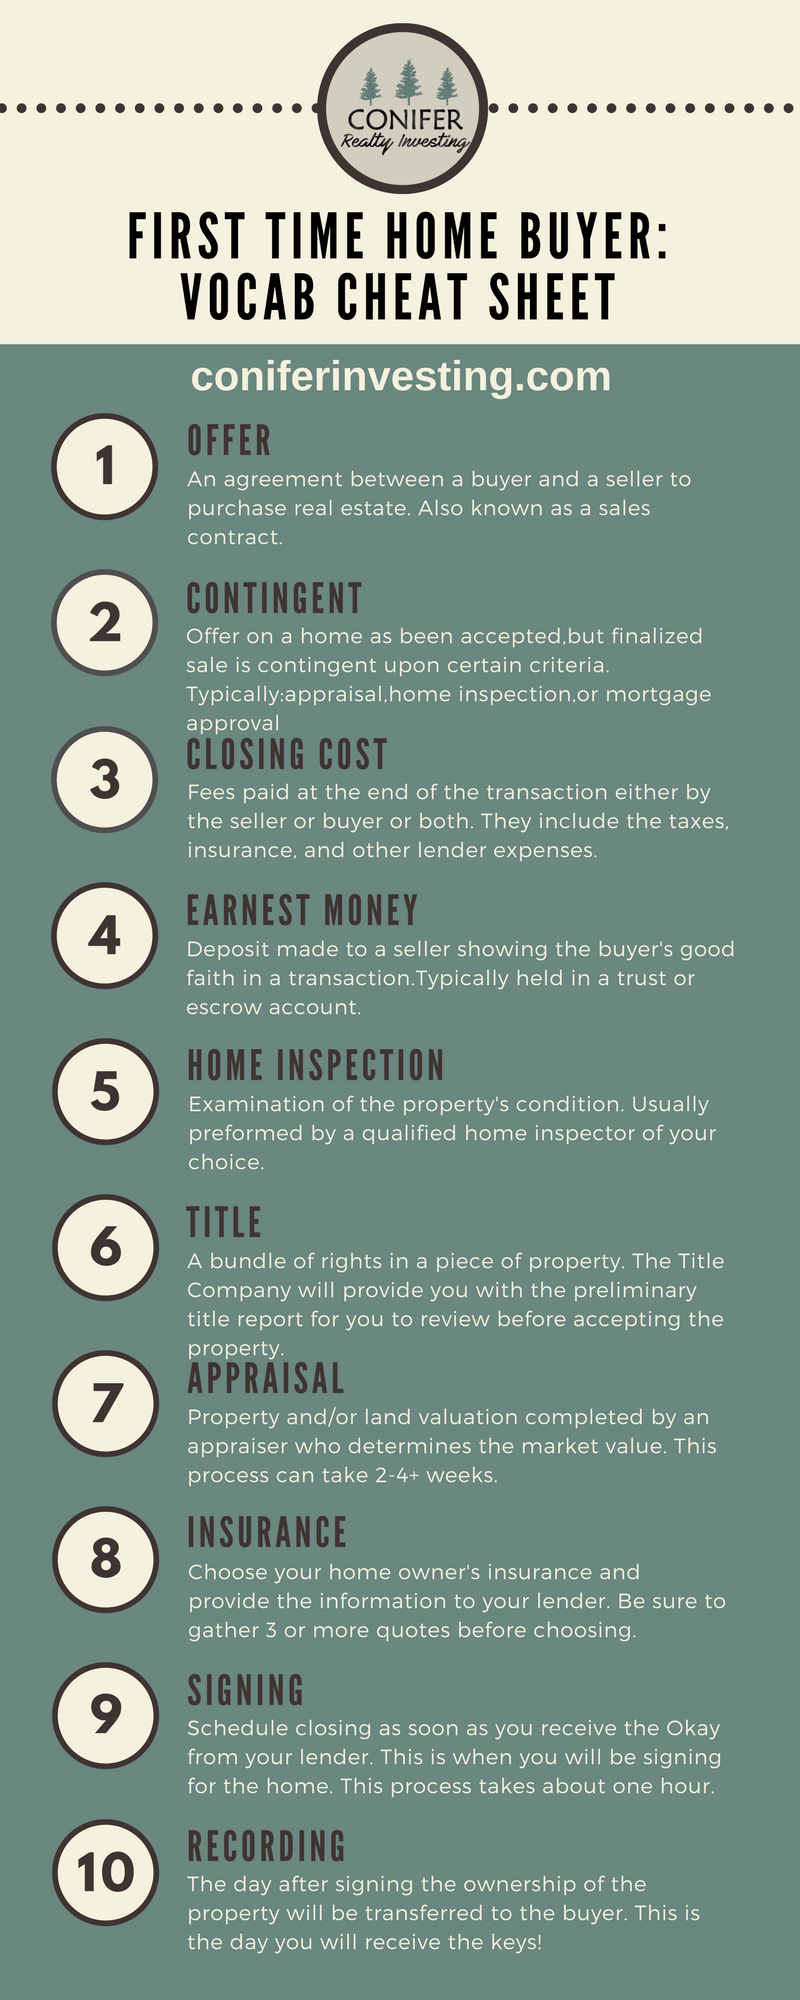 First Time Home Buyer Vocab Cheat Sheet With The Top 10 Terms Used